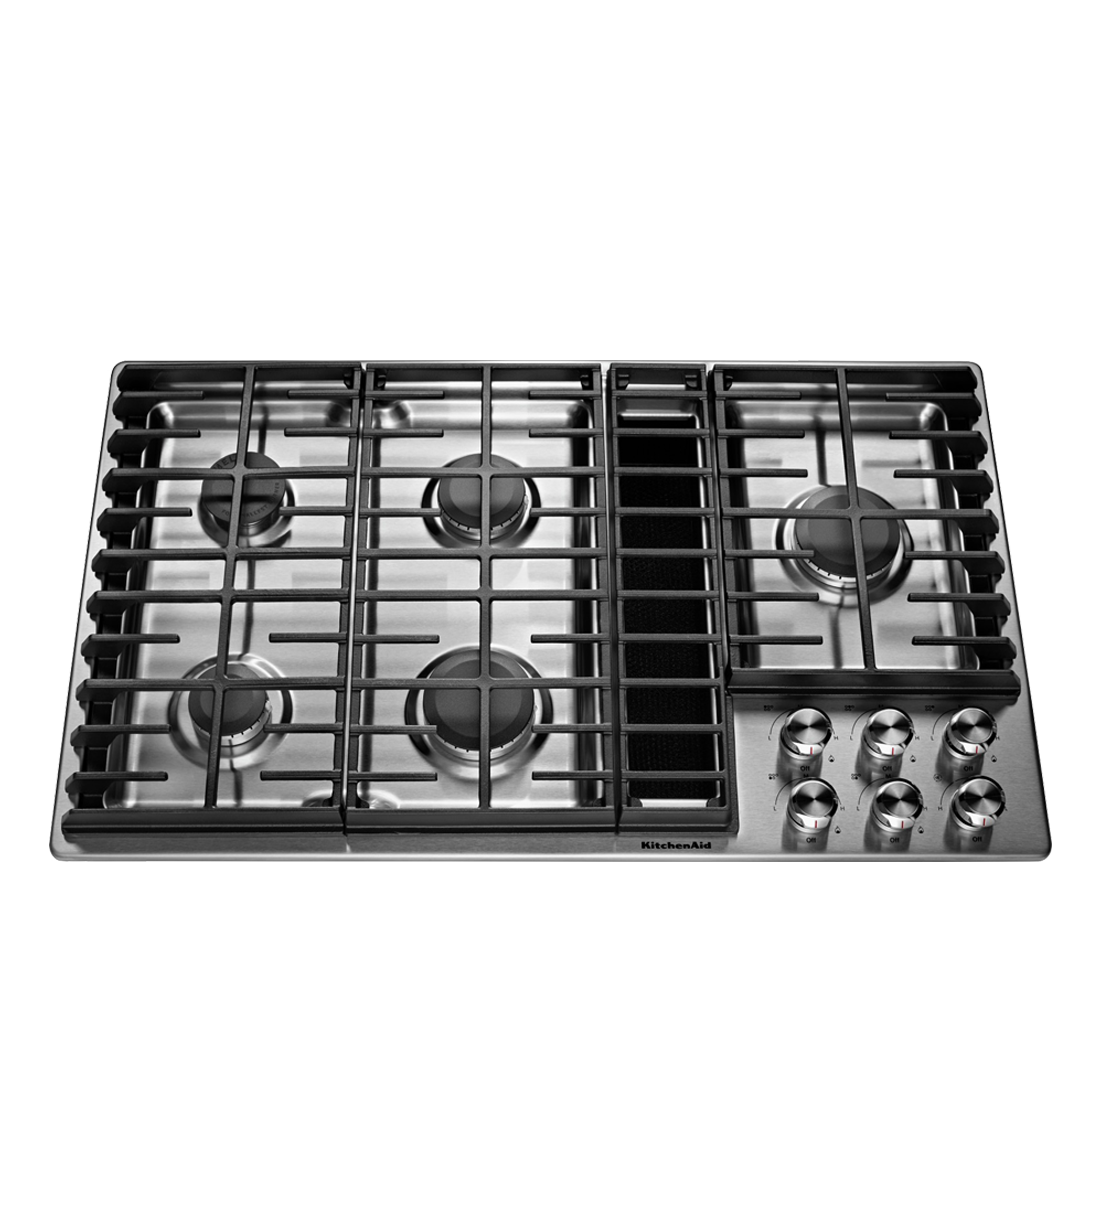 Kitchen Aid cooktop in Stainless Steel color showcased by Corbeil Electro Store